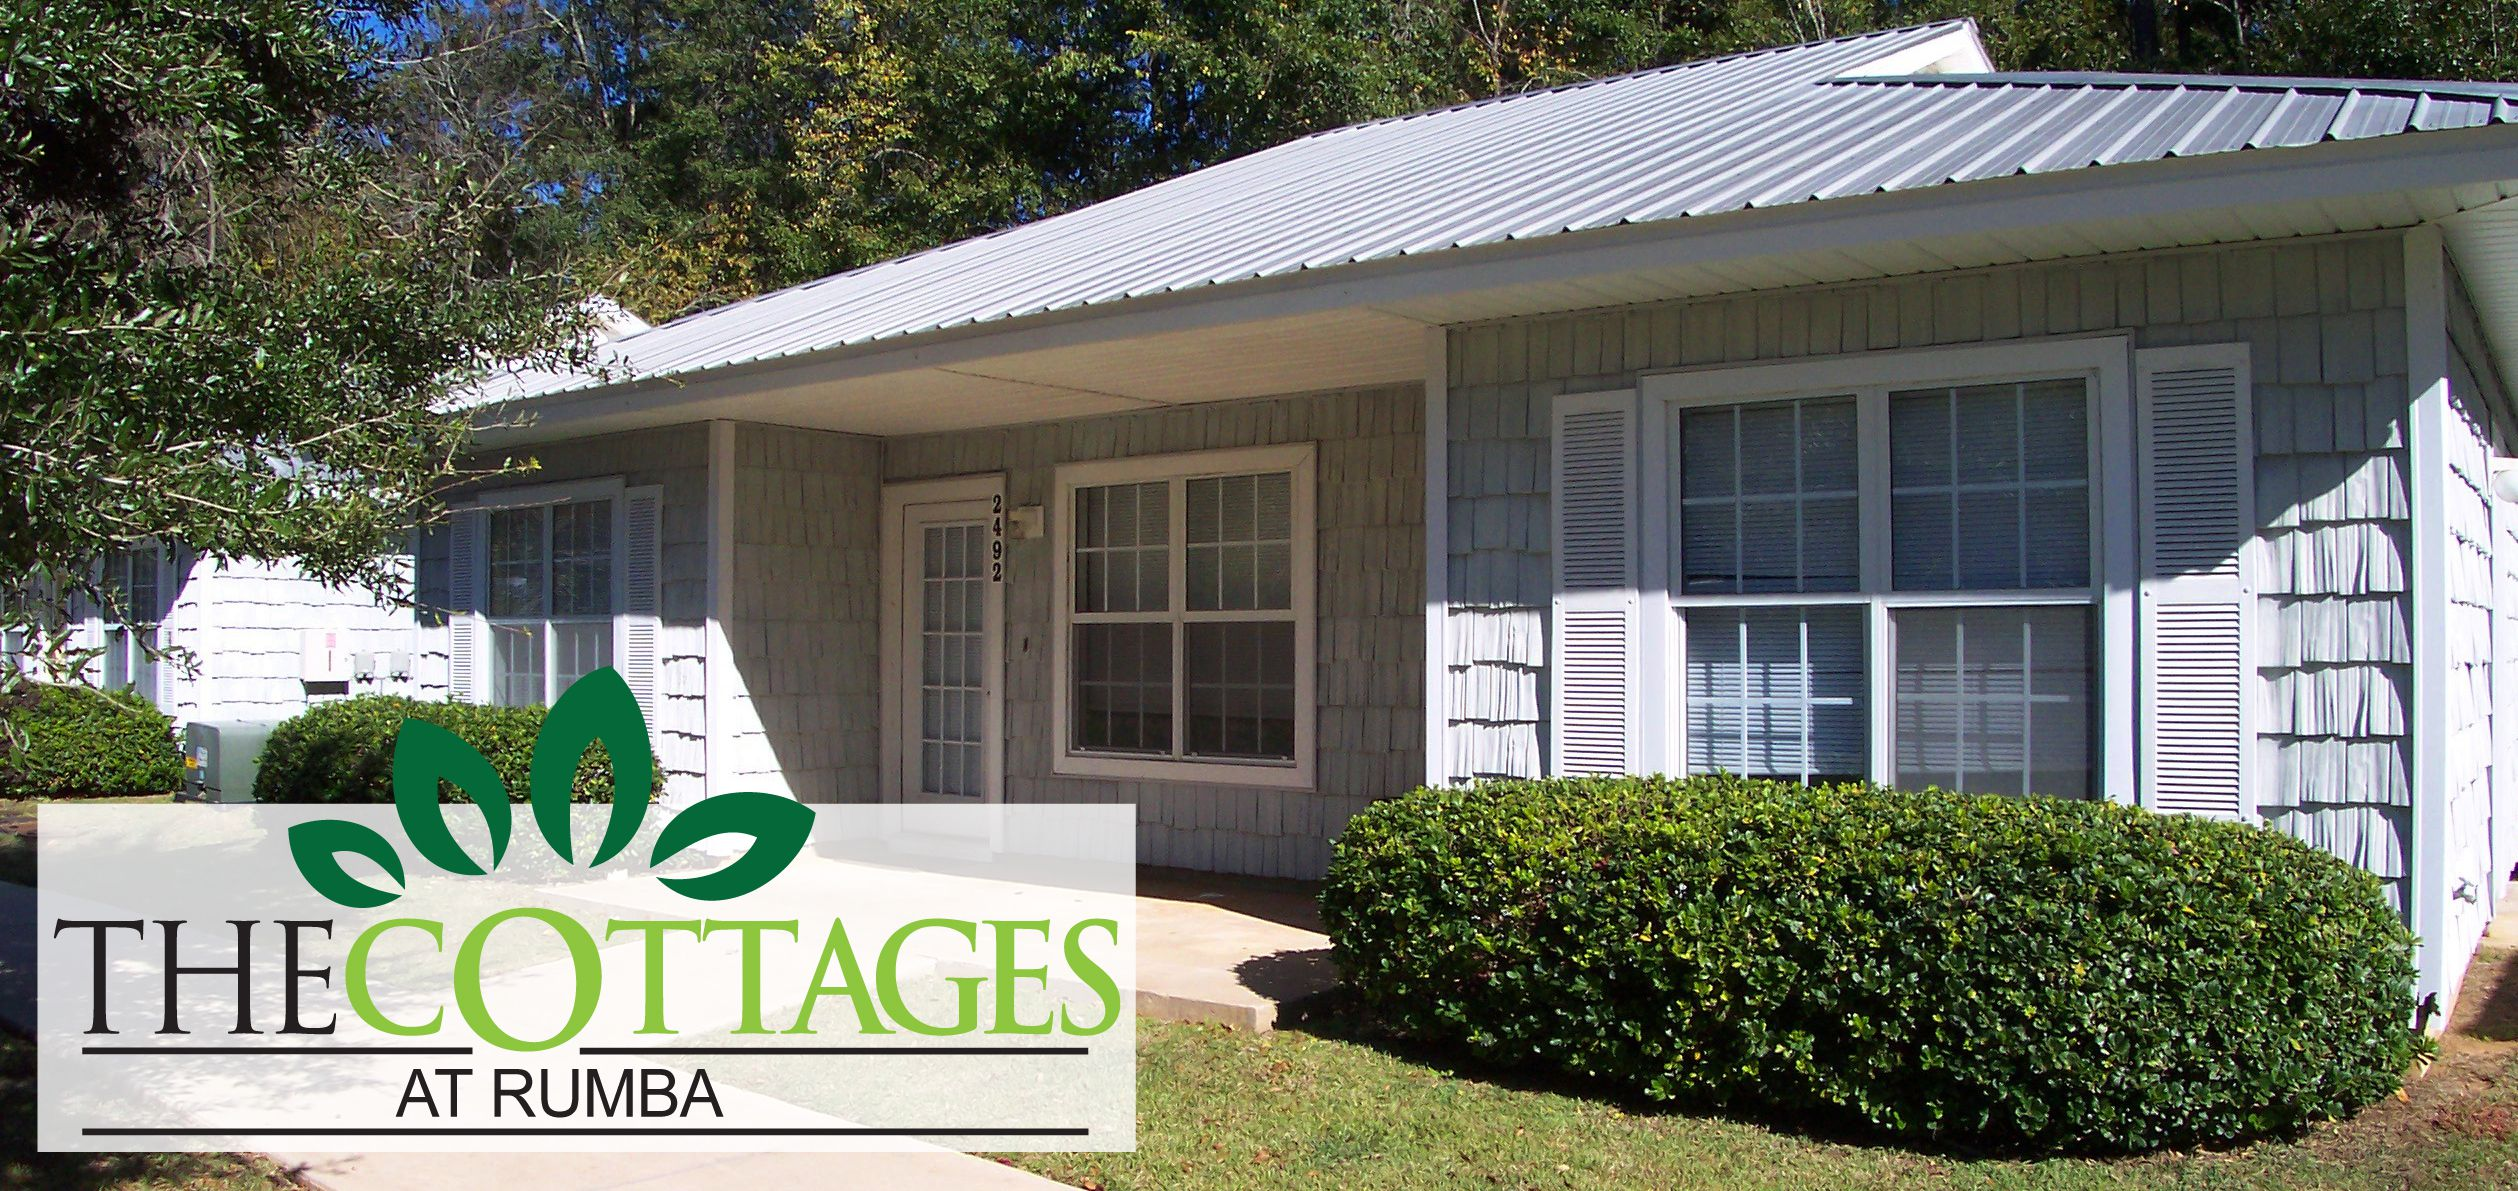 the cottages at rumba tallahassee student housing 385rent rh 385rent com the cottages at magnolia tallahassee the cottages tallahassee florida